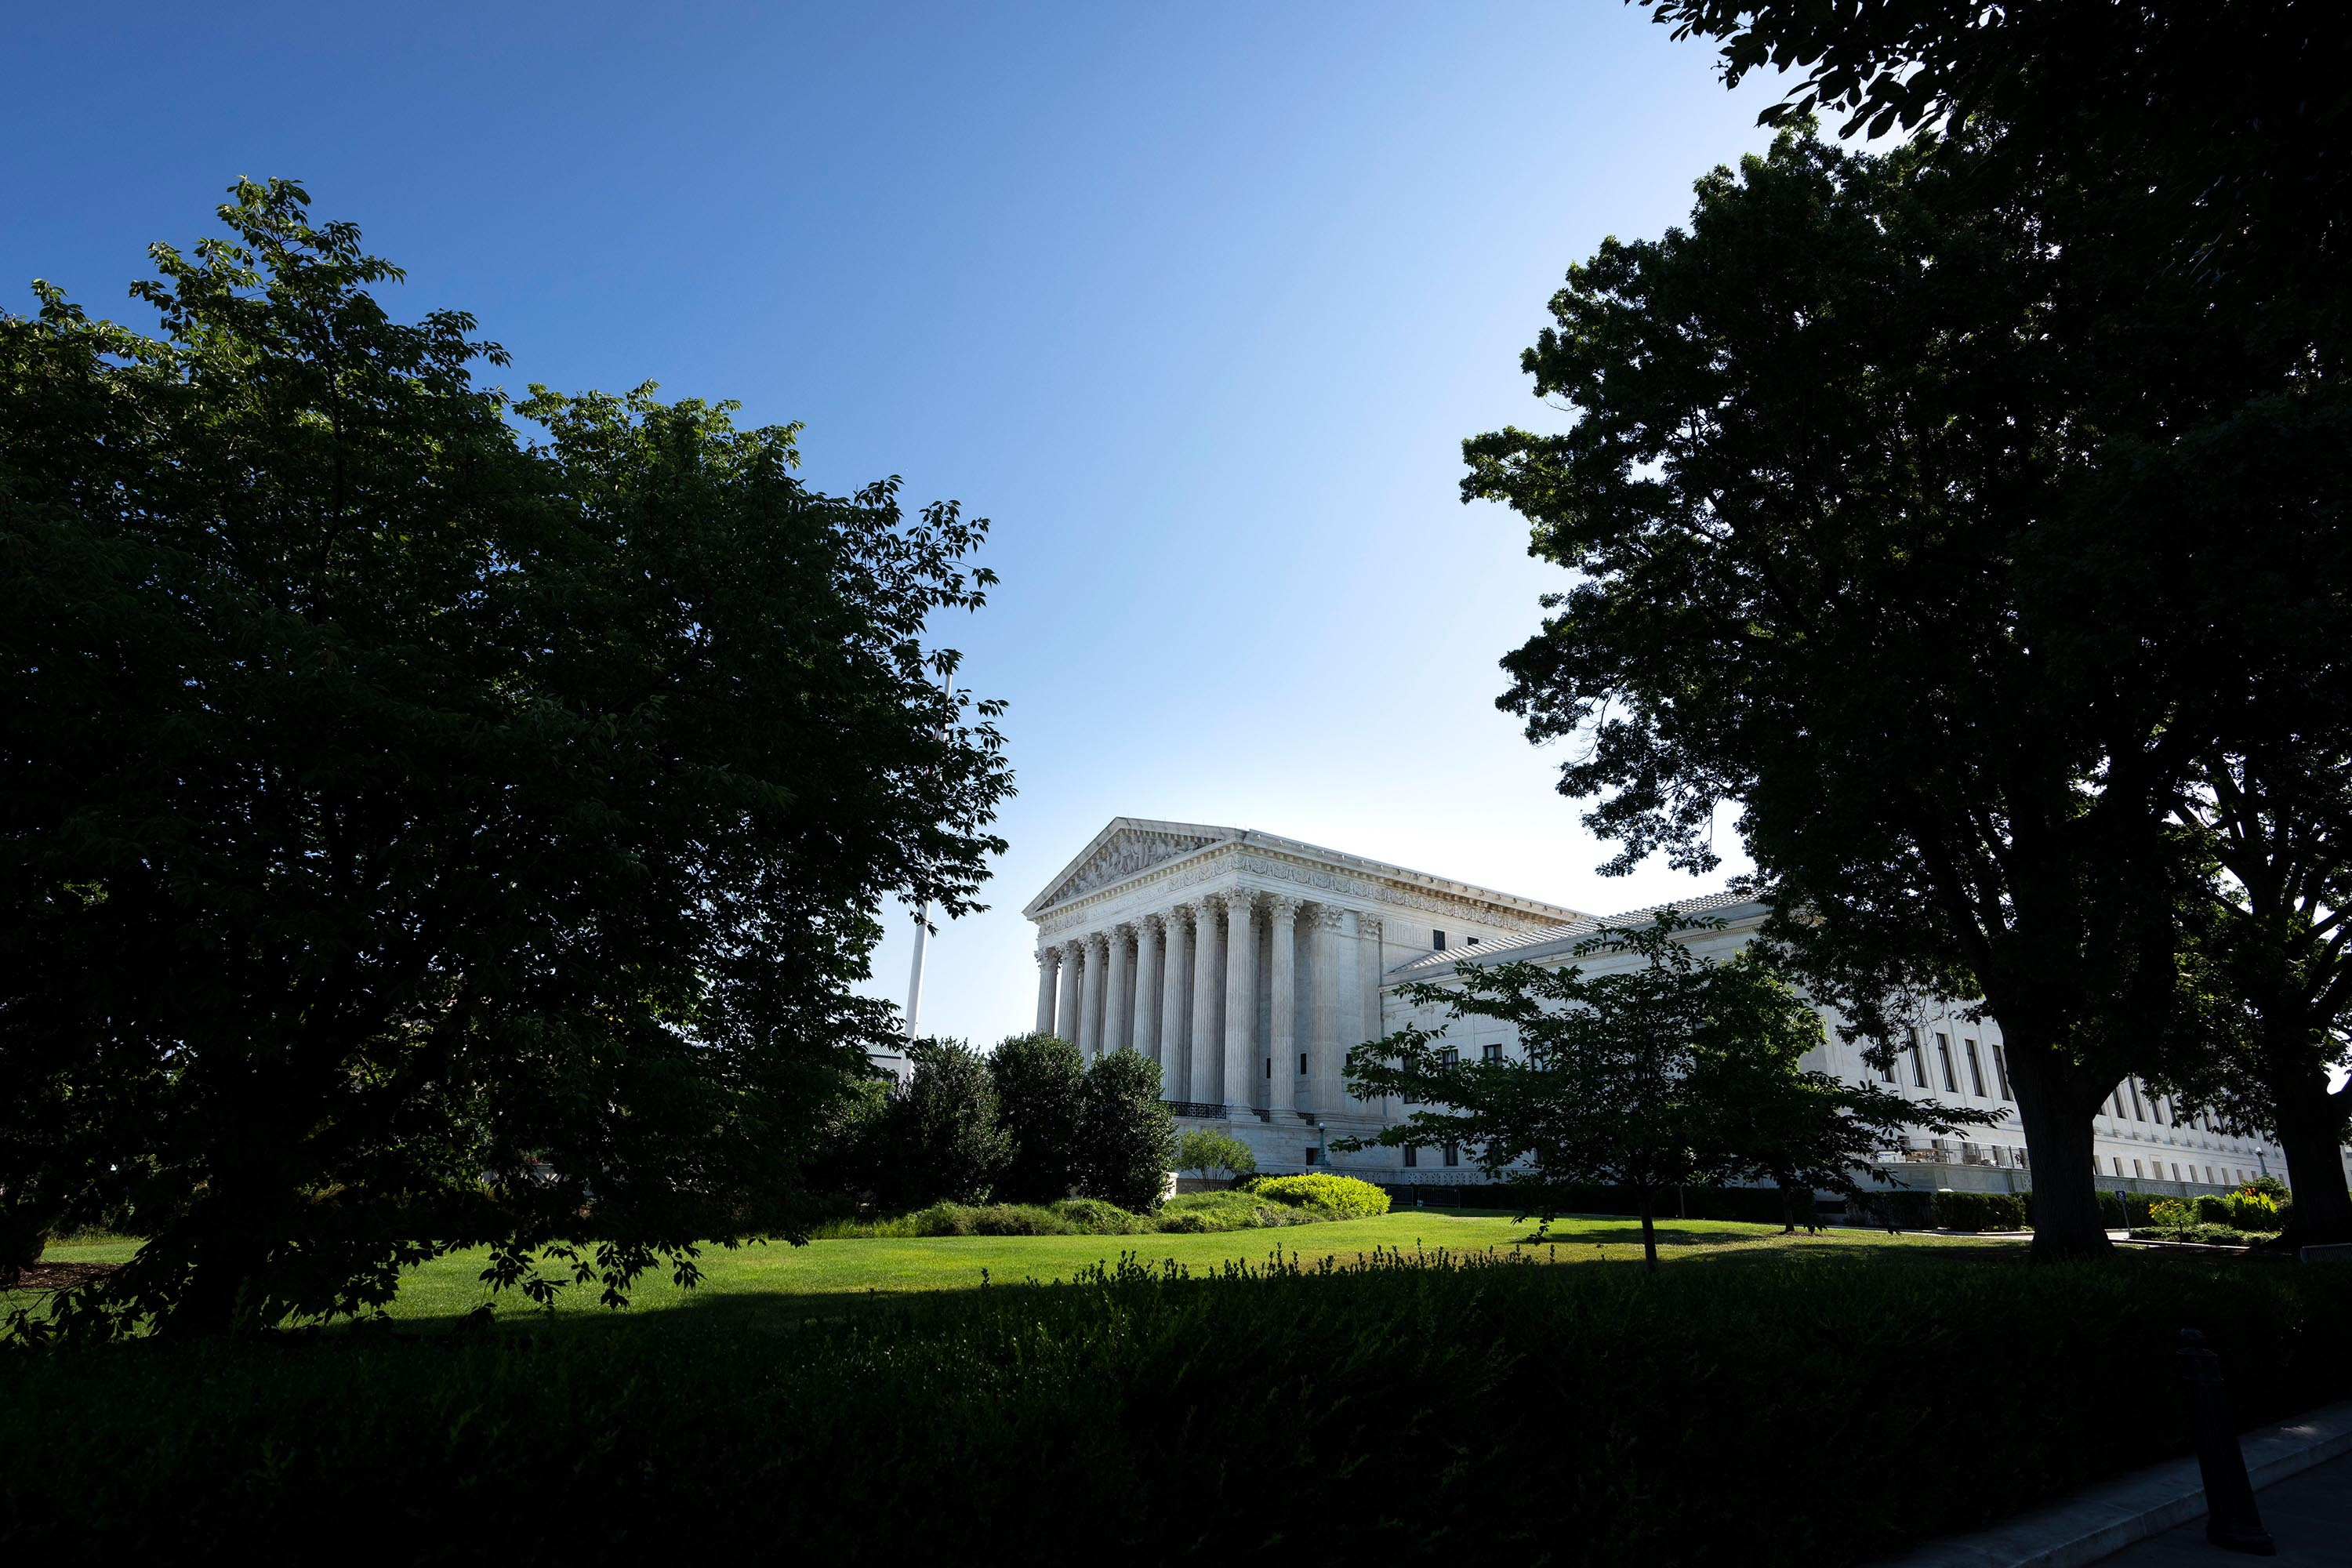 The Supreme Court will issue its final opinions of the term Thursday. Here are the two major cases.